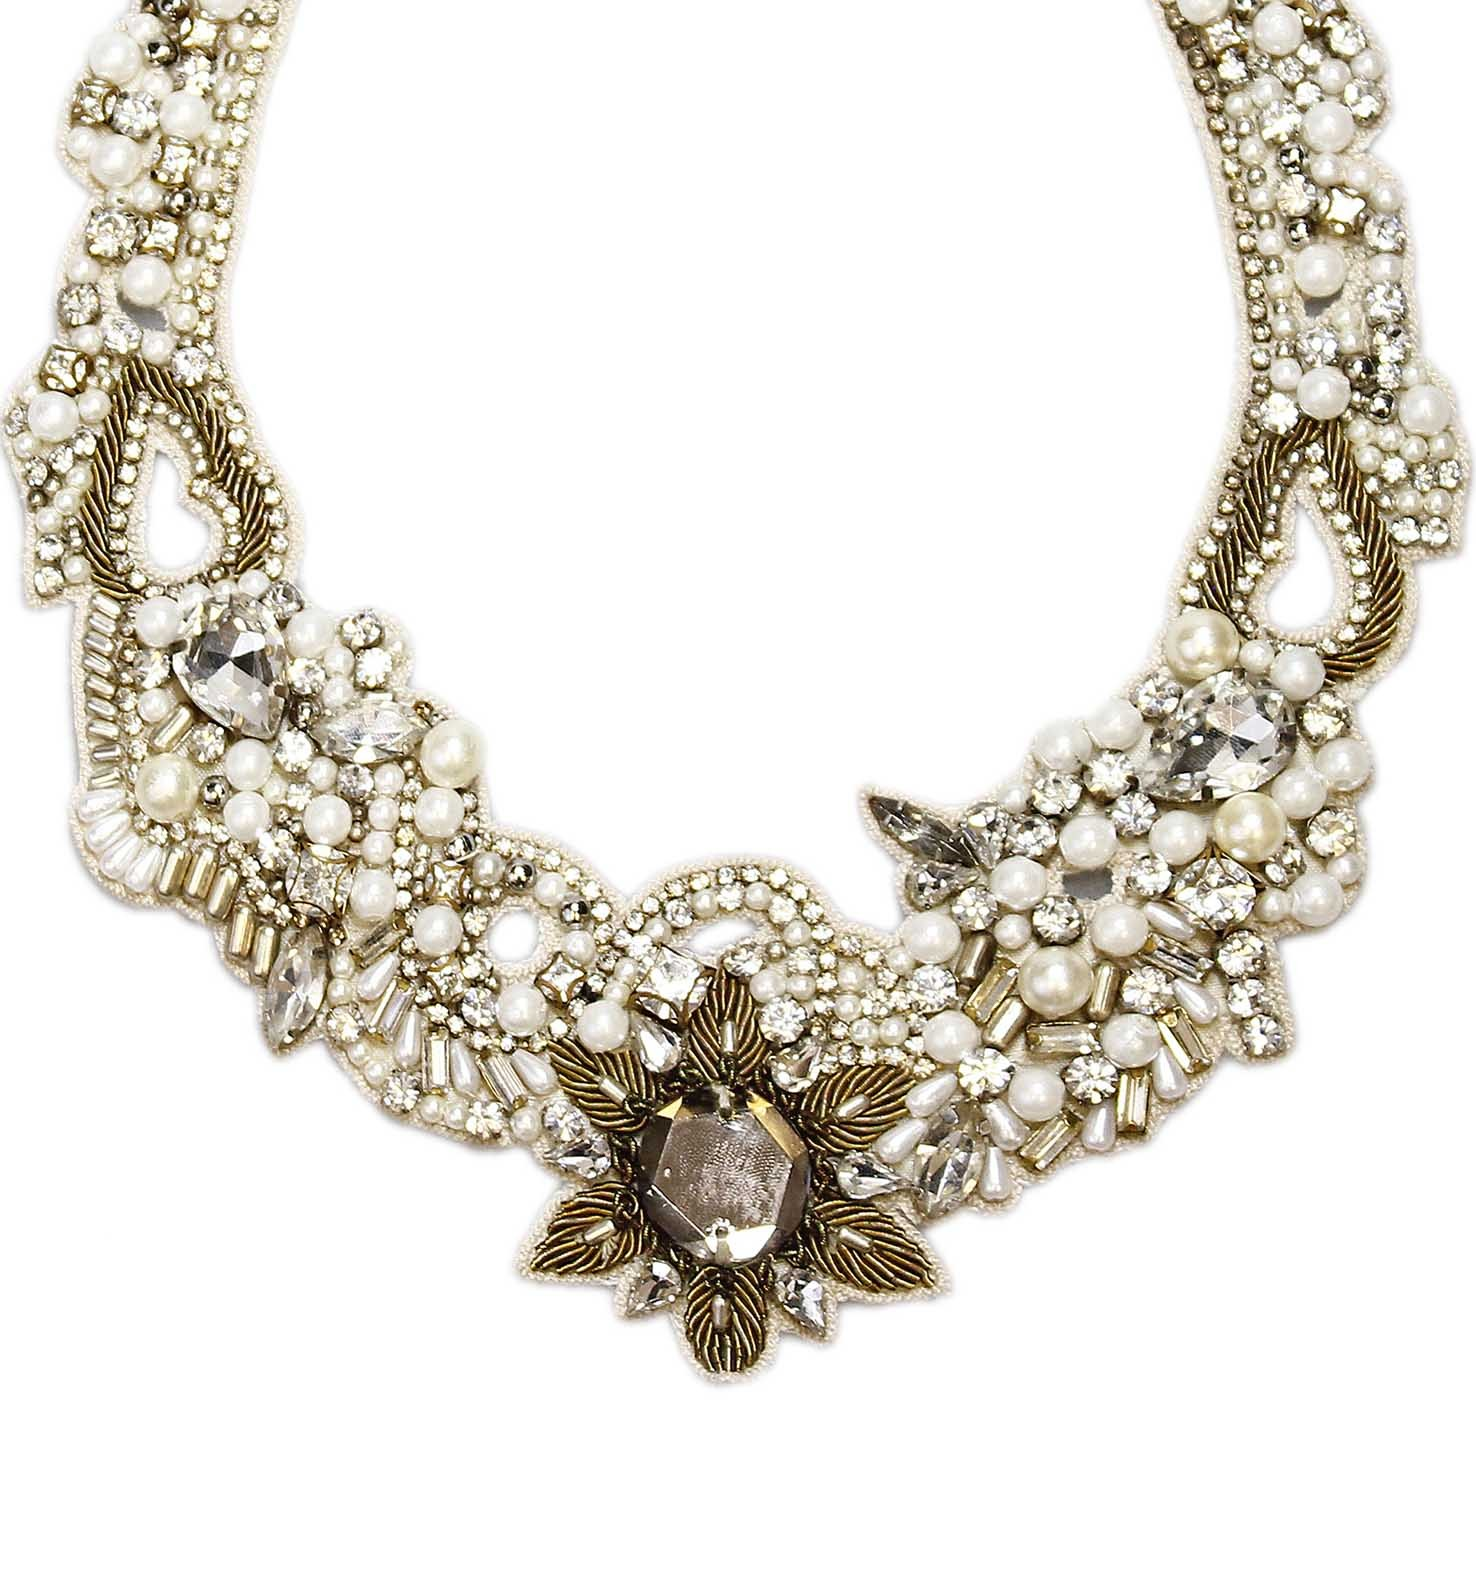 Pearl Necklace Styles: Vintage-style Pearl Necklace